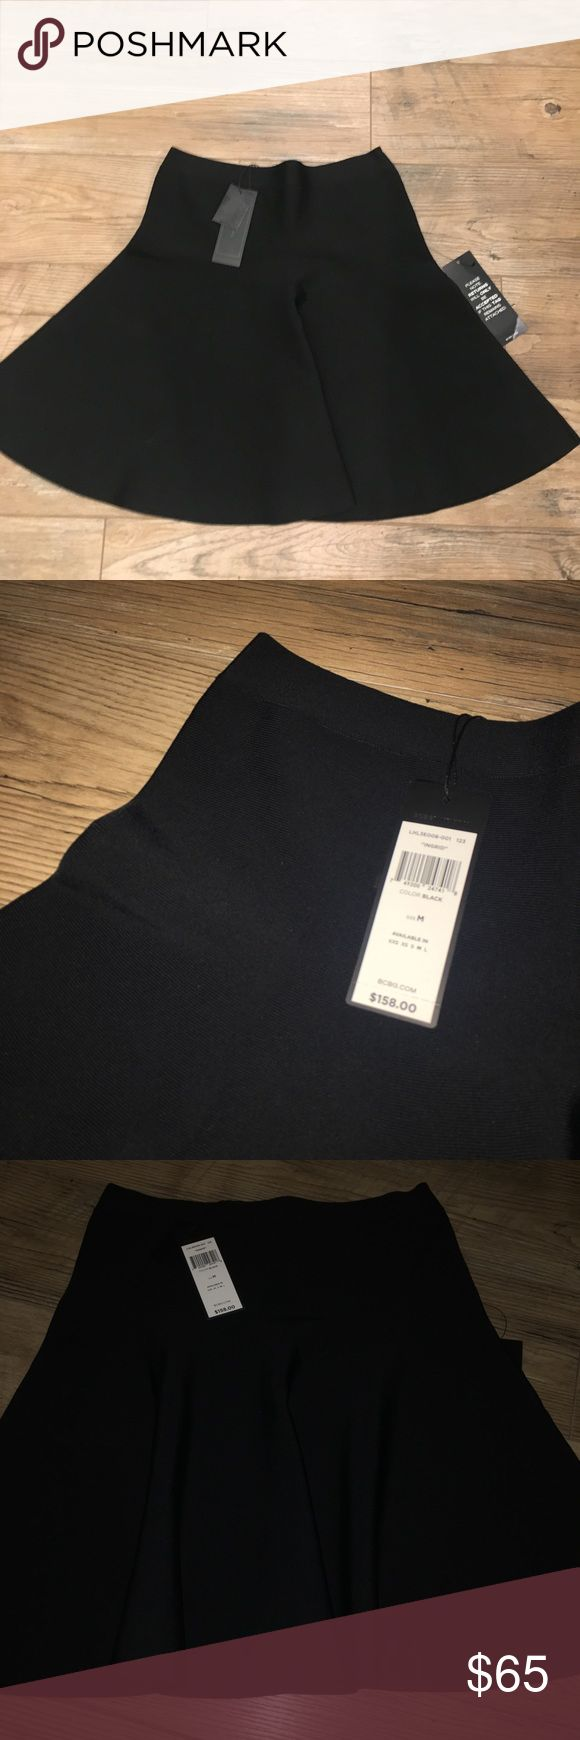 BCBGMAXAZRIA SKIRT! Black stretchy BCBGMAXAZRIA skirt! Extremely good for an professional environment and is made out of rayon! BNWT! Price is negotiable BCBGMaxAzria Skirts Midi